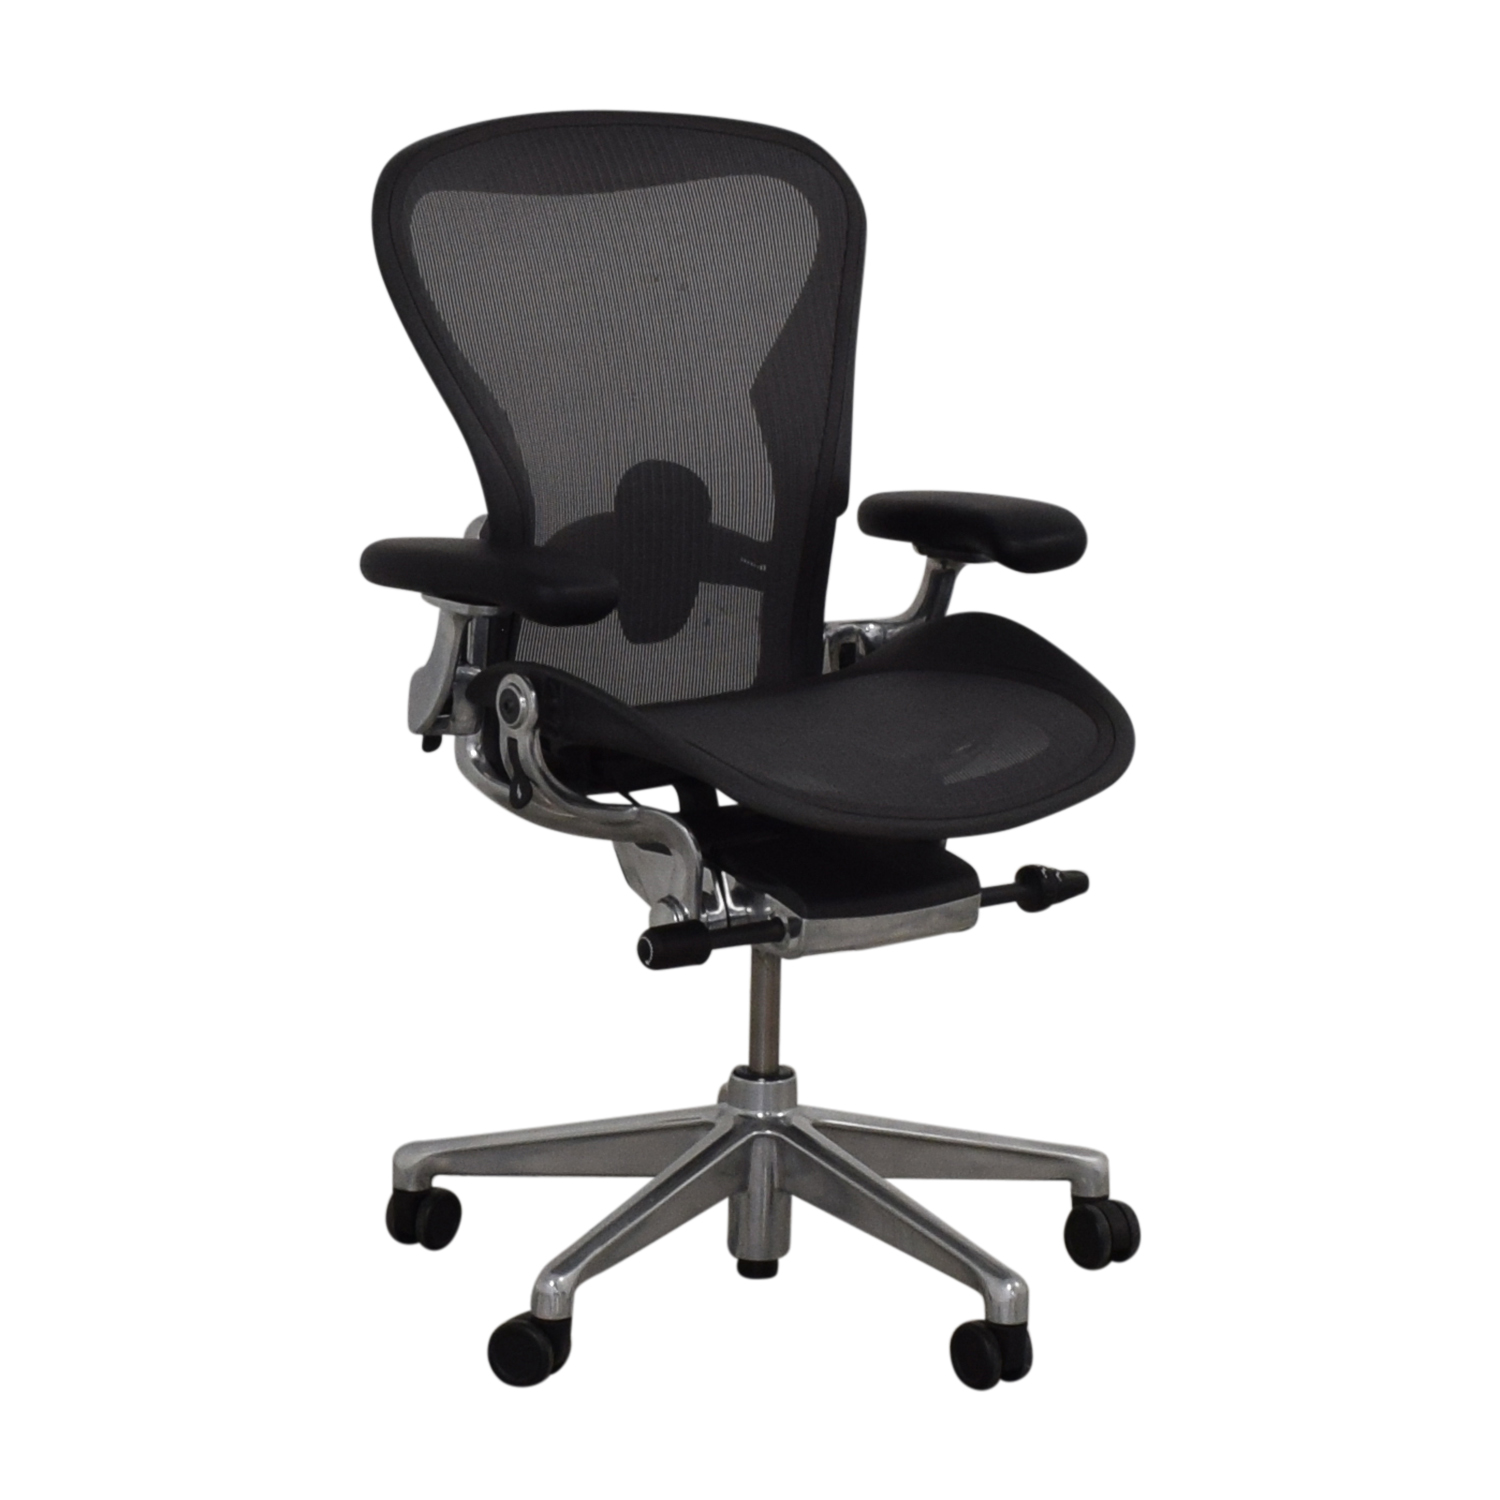 Herman Miller Herman Miller Aeron Size B Office Chair for sale